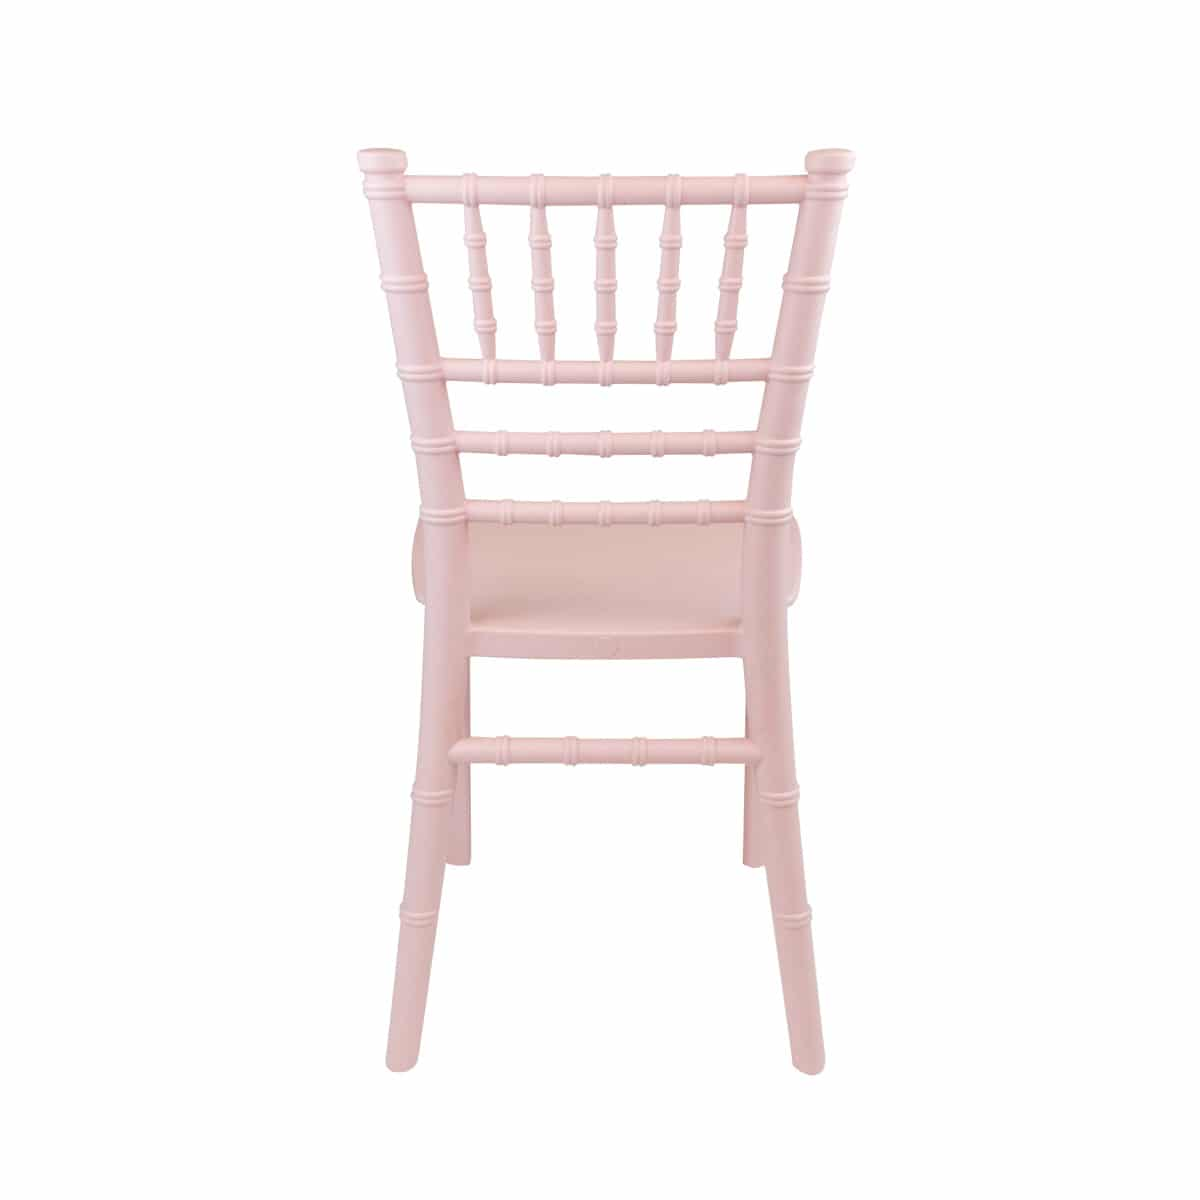 child sized chairs 3 in 1 potty chair size tiffany the classic chiavari for kids